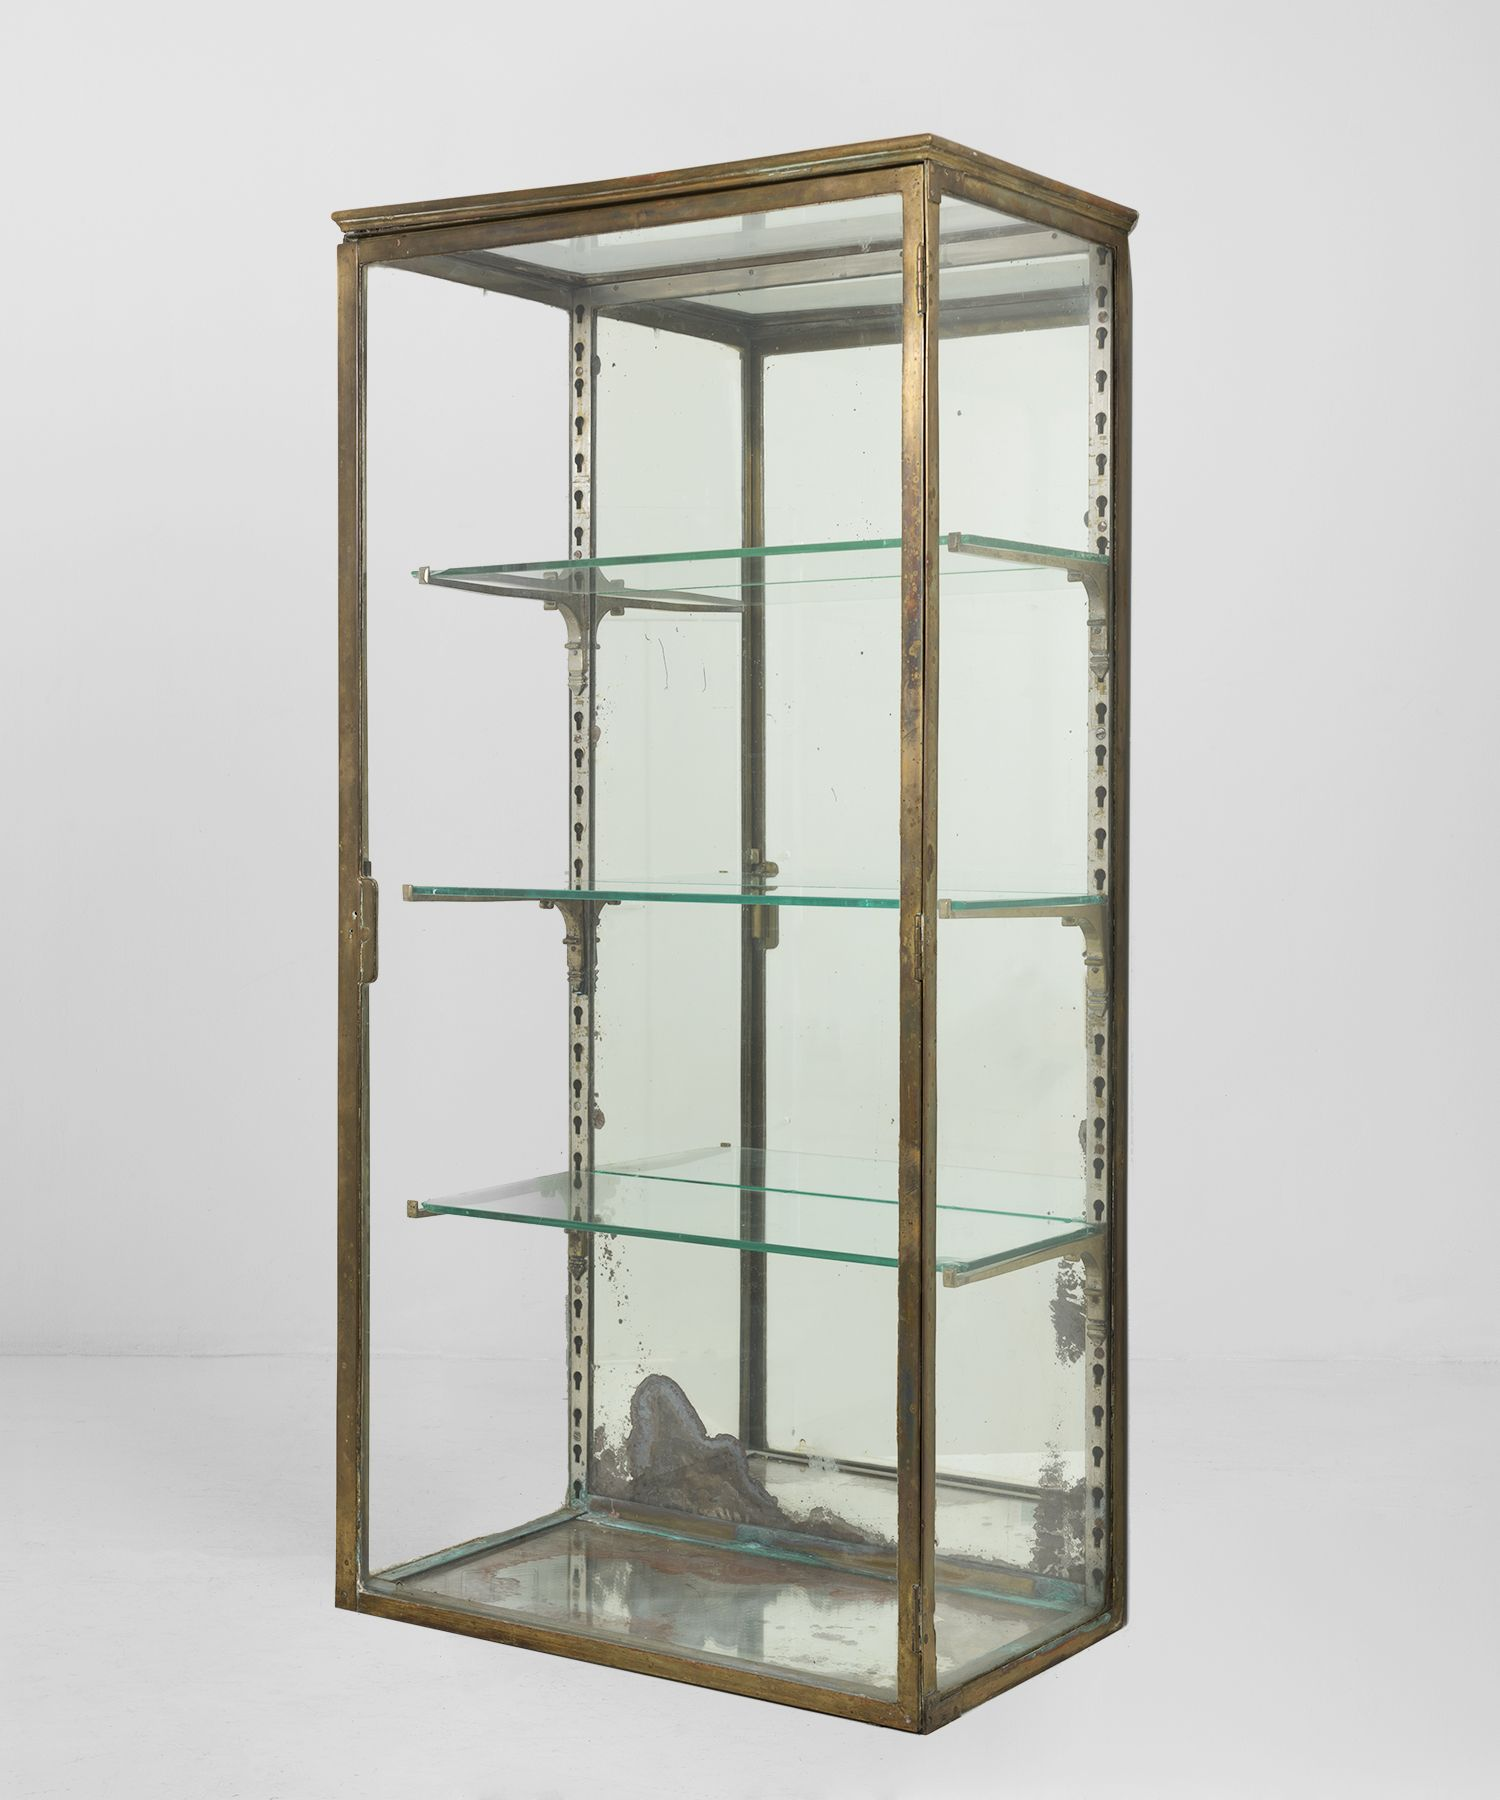 Unique Glass Wall Display Cabinet